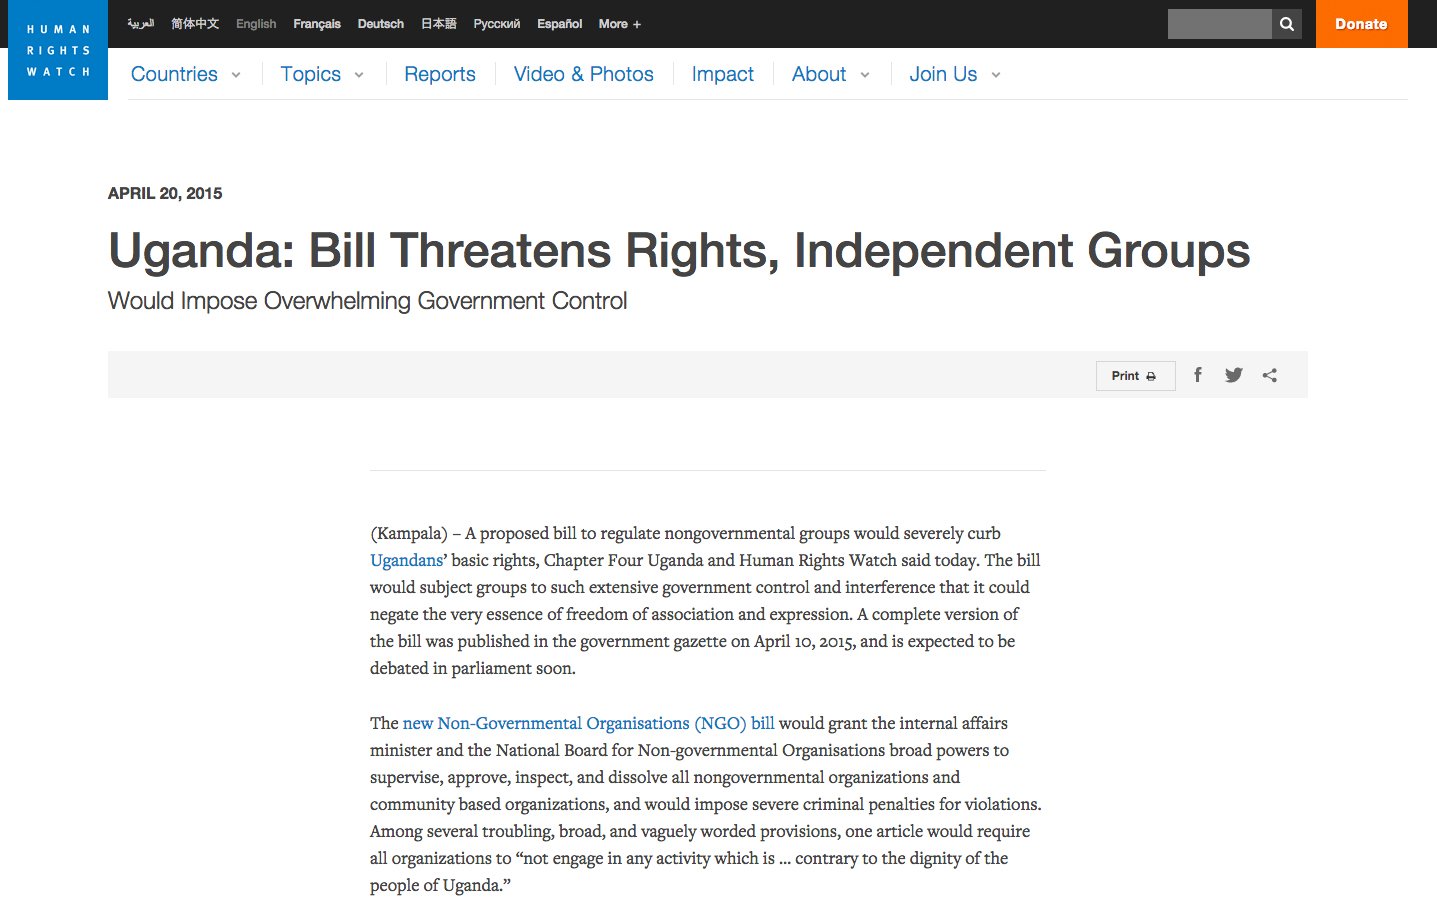 Uganda Bill threatens Rights, Independent Groups